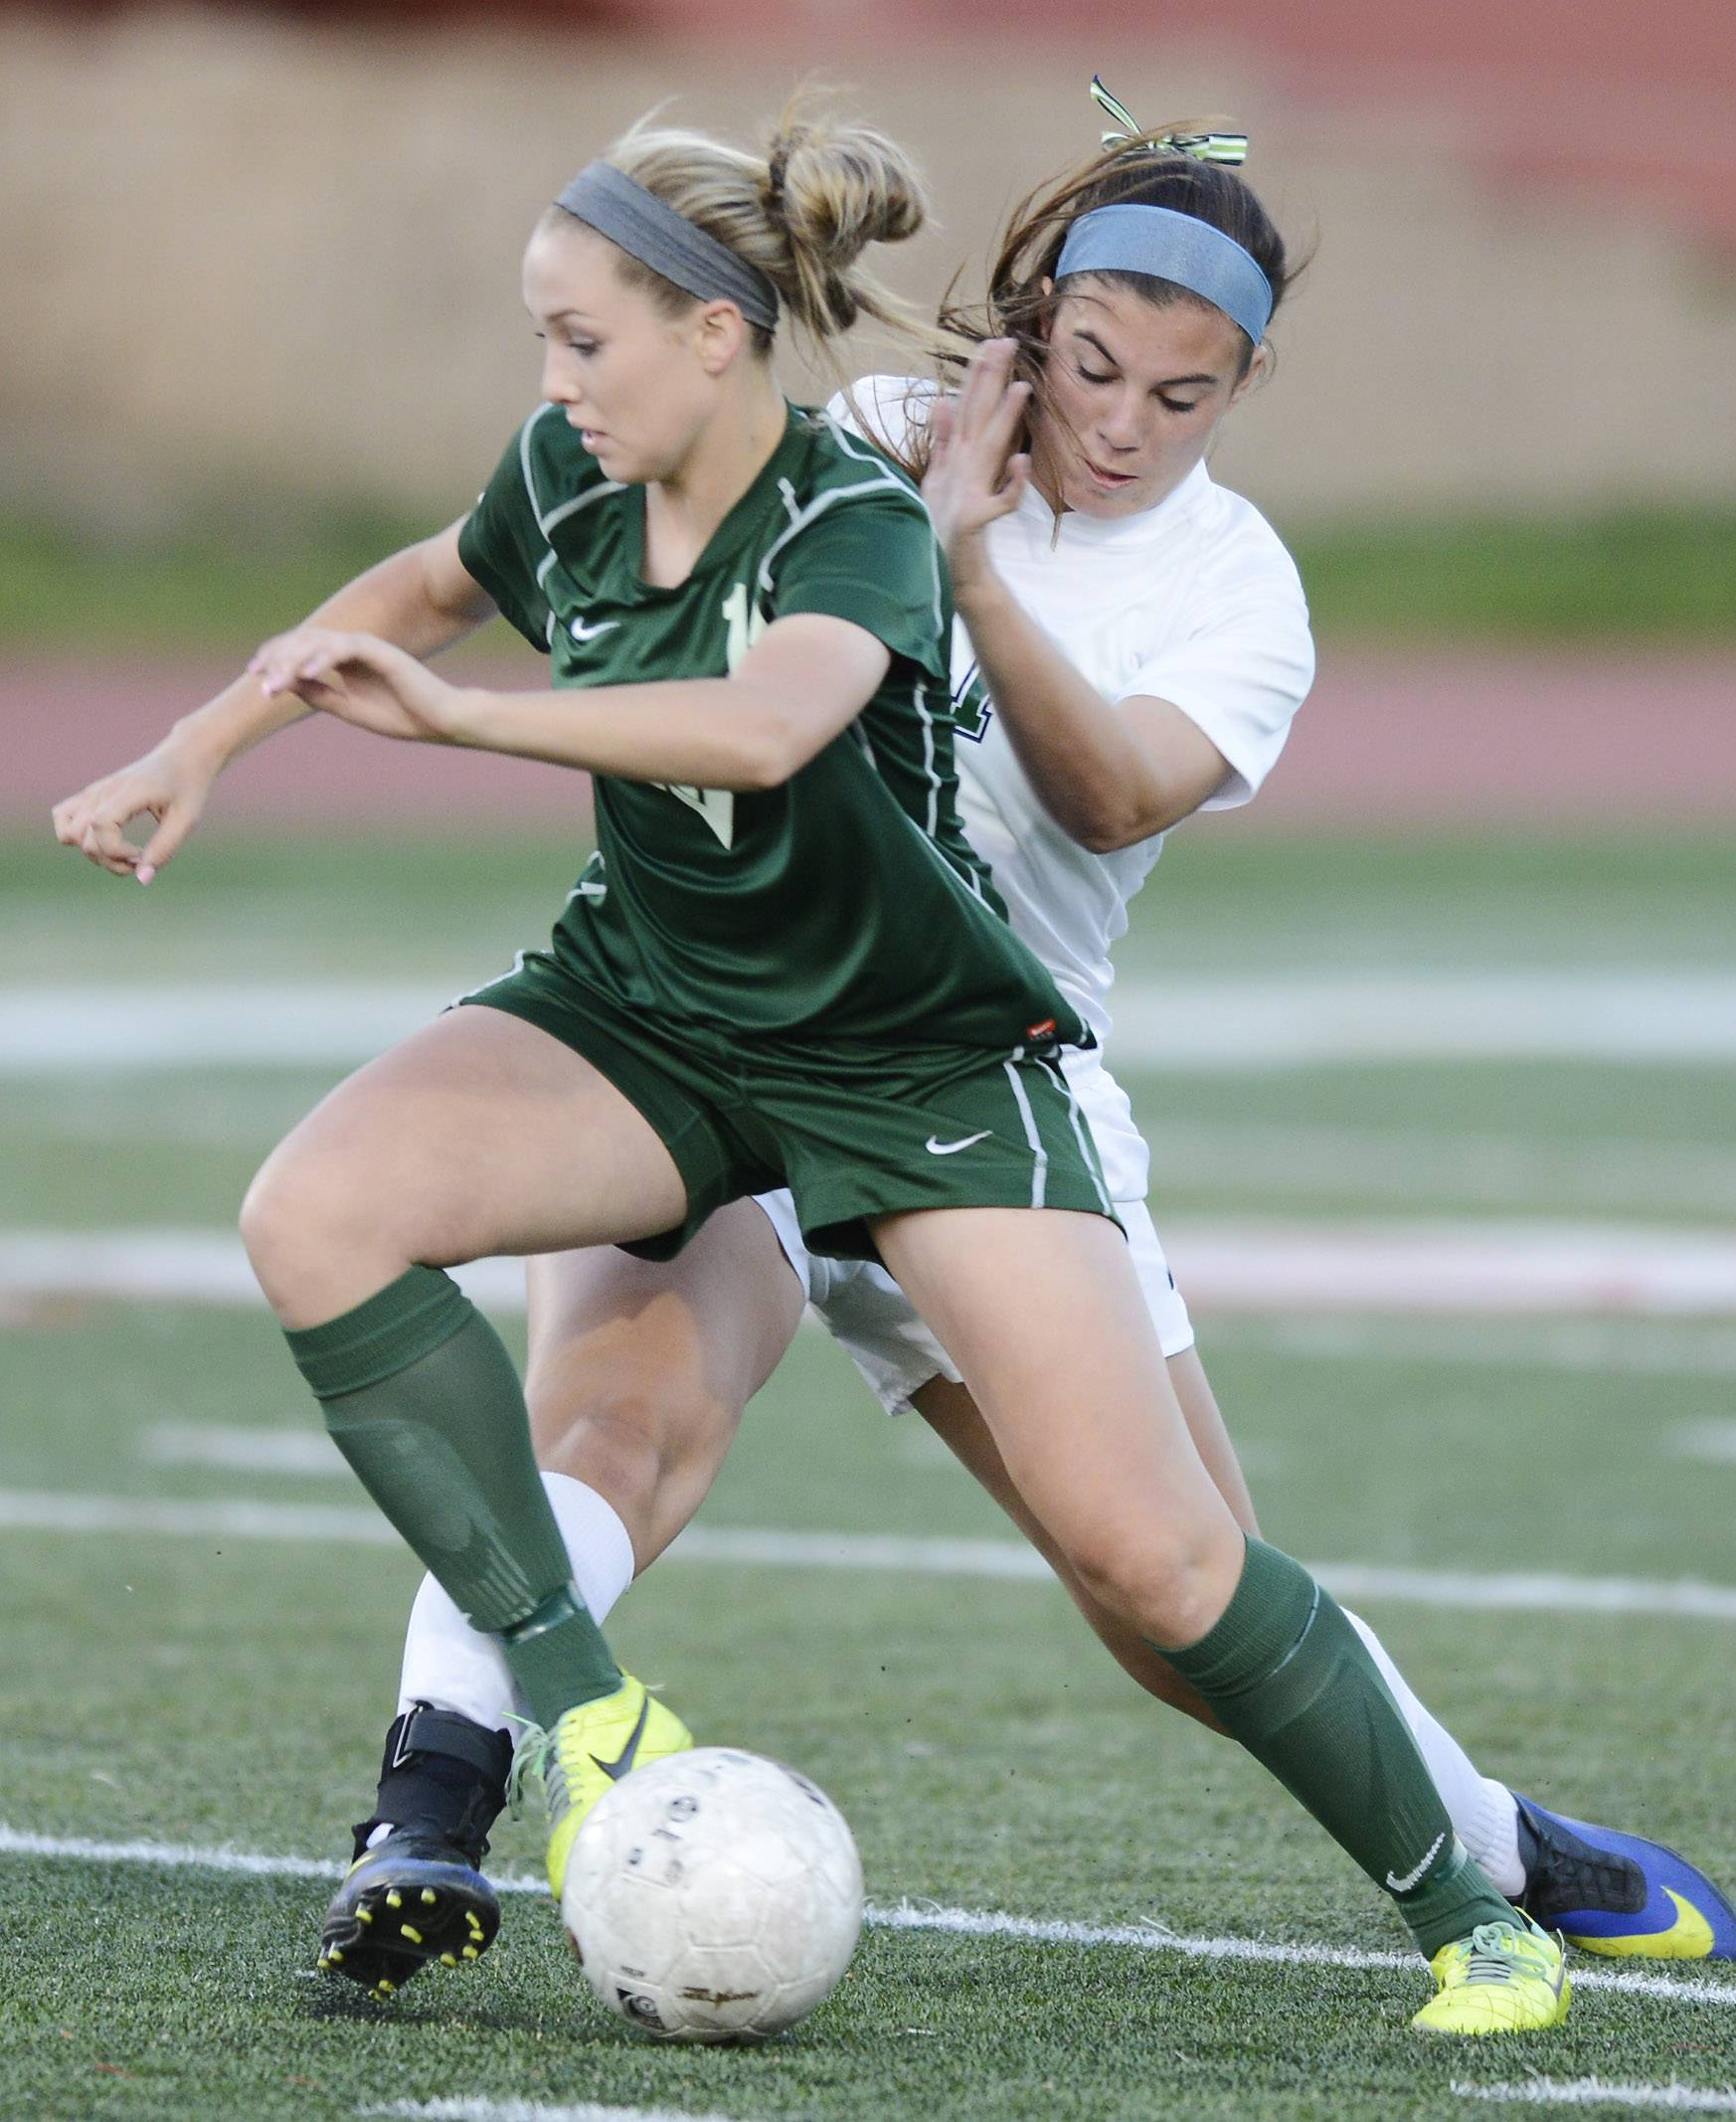 Waubosnie Valley's Maggie Roe, left, and New Trier's Alex Bukovac make contact as they pursue the ball during the girls soccer Class 3A state semifinal at North Central College in Naperville Friday.